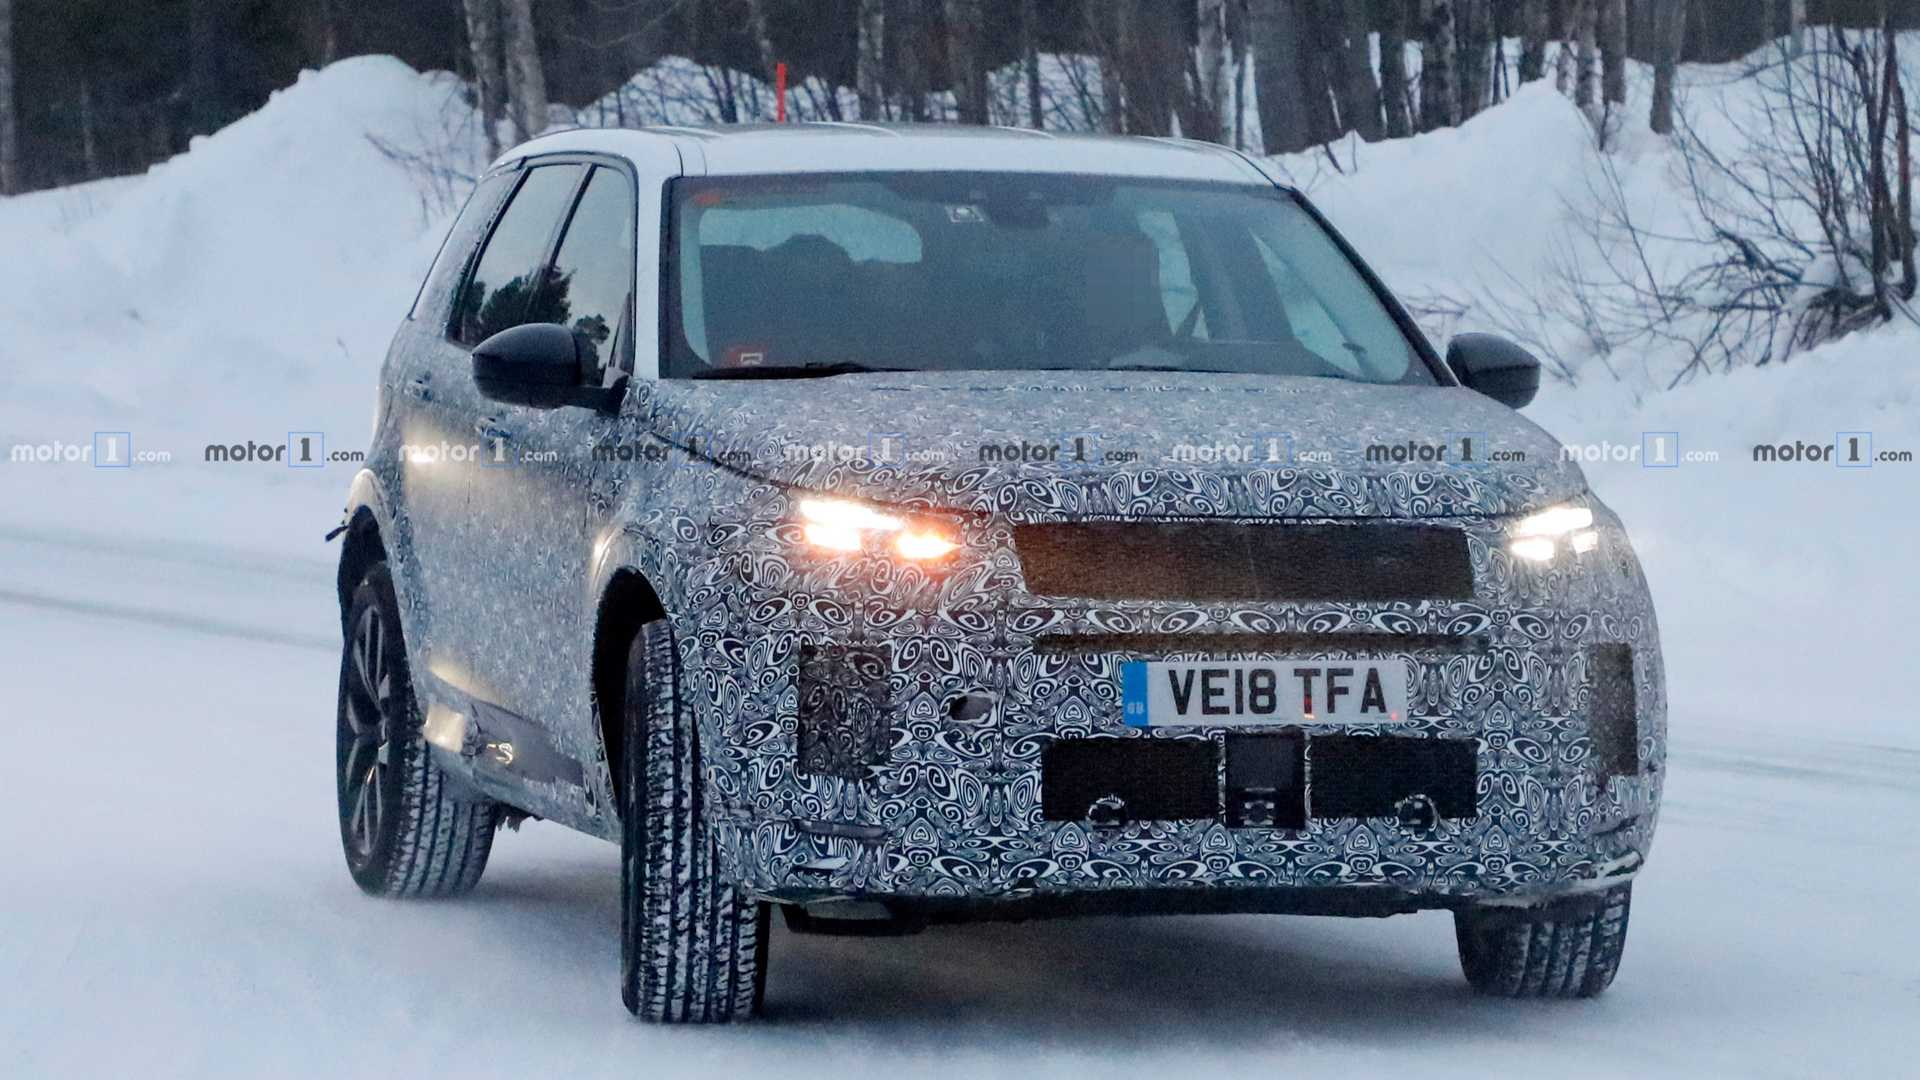 According to the latest leak, Jaguar Land Rover intends to design its future SUVs on BMW's FAAR platform, which the German manufacturer currently employs in the 1 Series and a number of MINI vehicles.